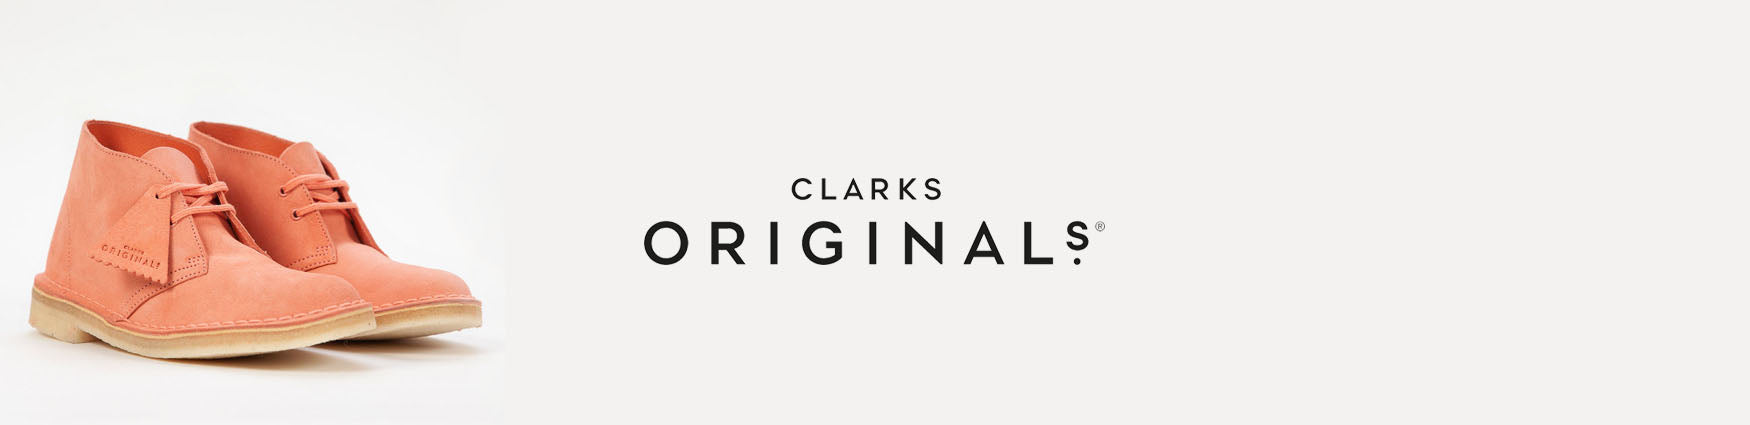 Clarks Originals Coral Suede Desert Boots | Shop online Roo's Beach UK